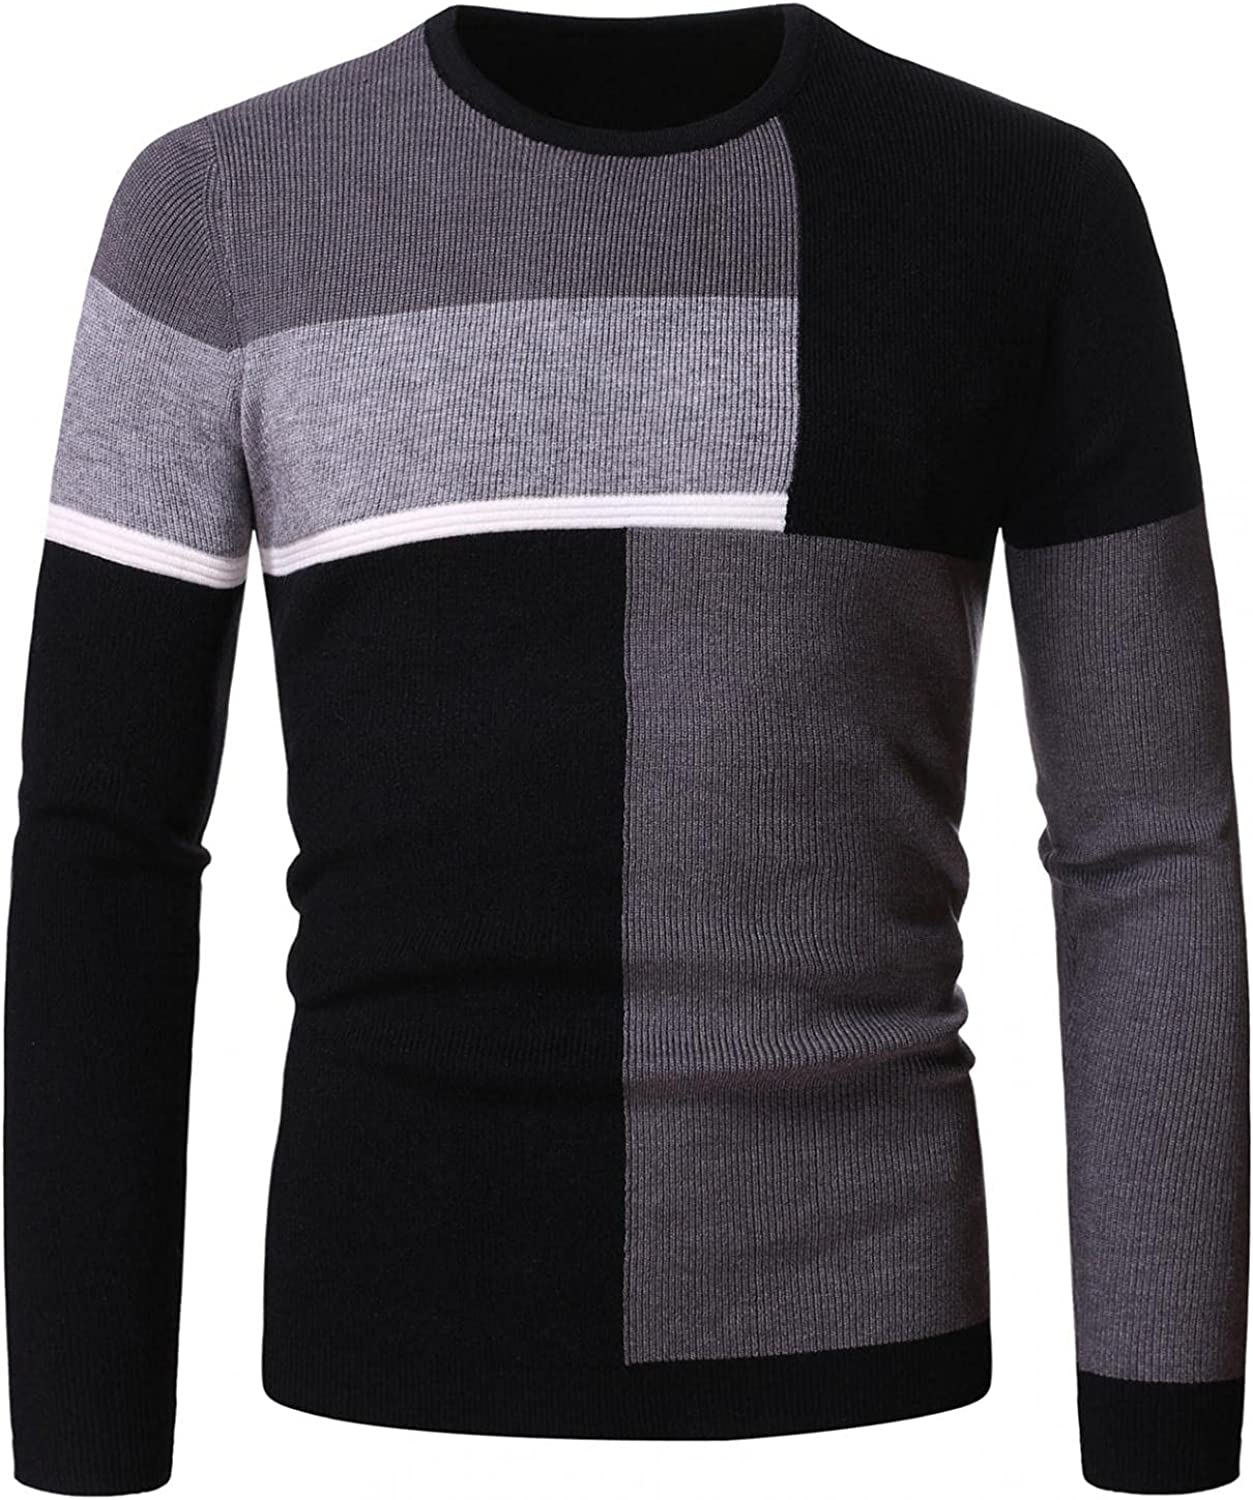 Men Knitted Sweatshirt Long Sleeve Round Neck Pullover Sweater Classic Stripe Color Block Jumper Lightweight Soft Top